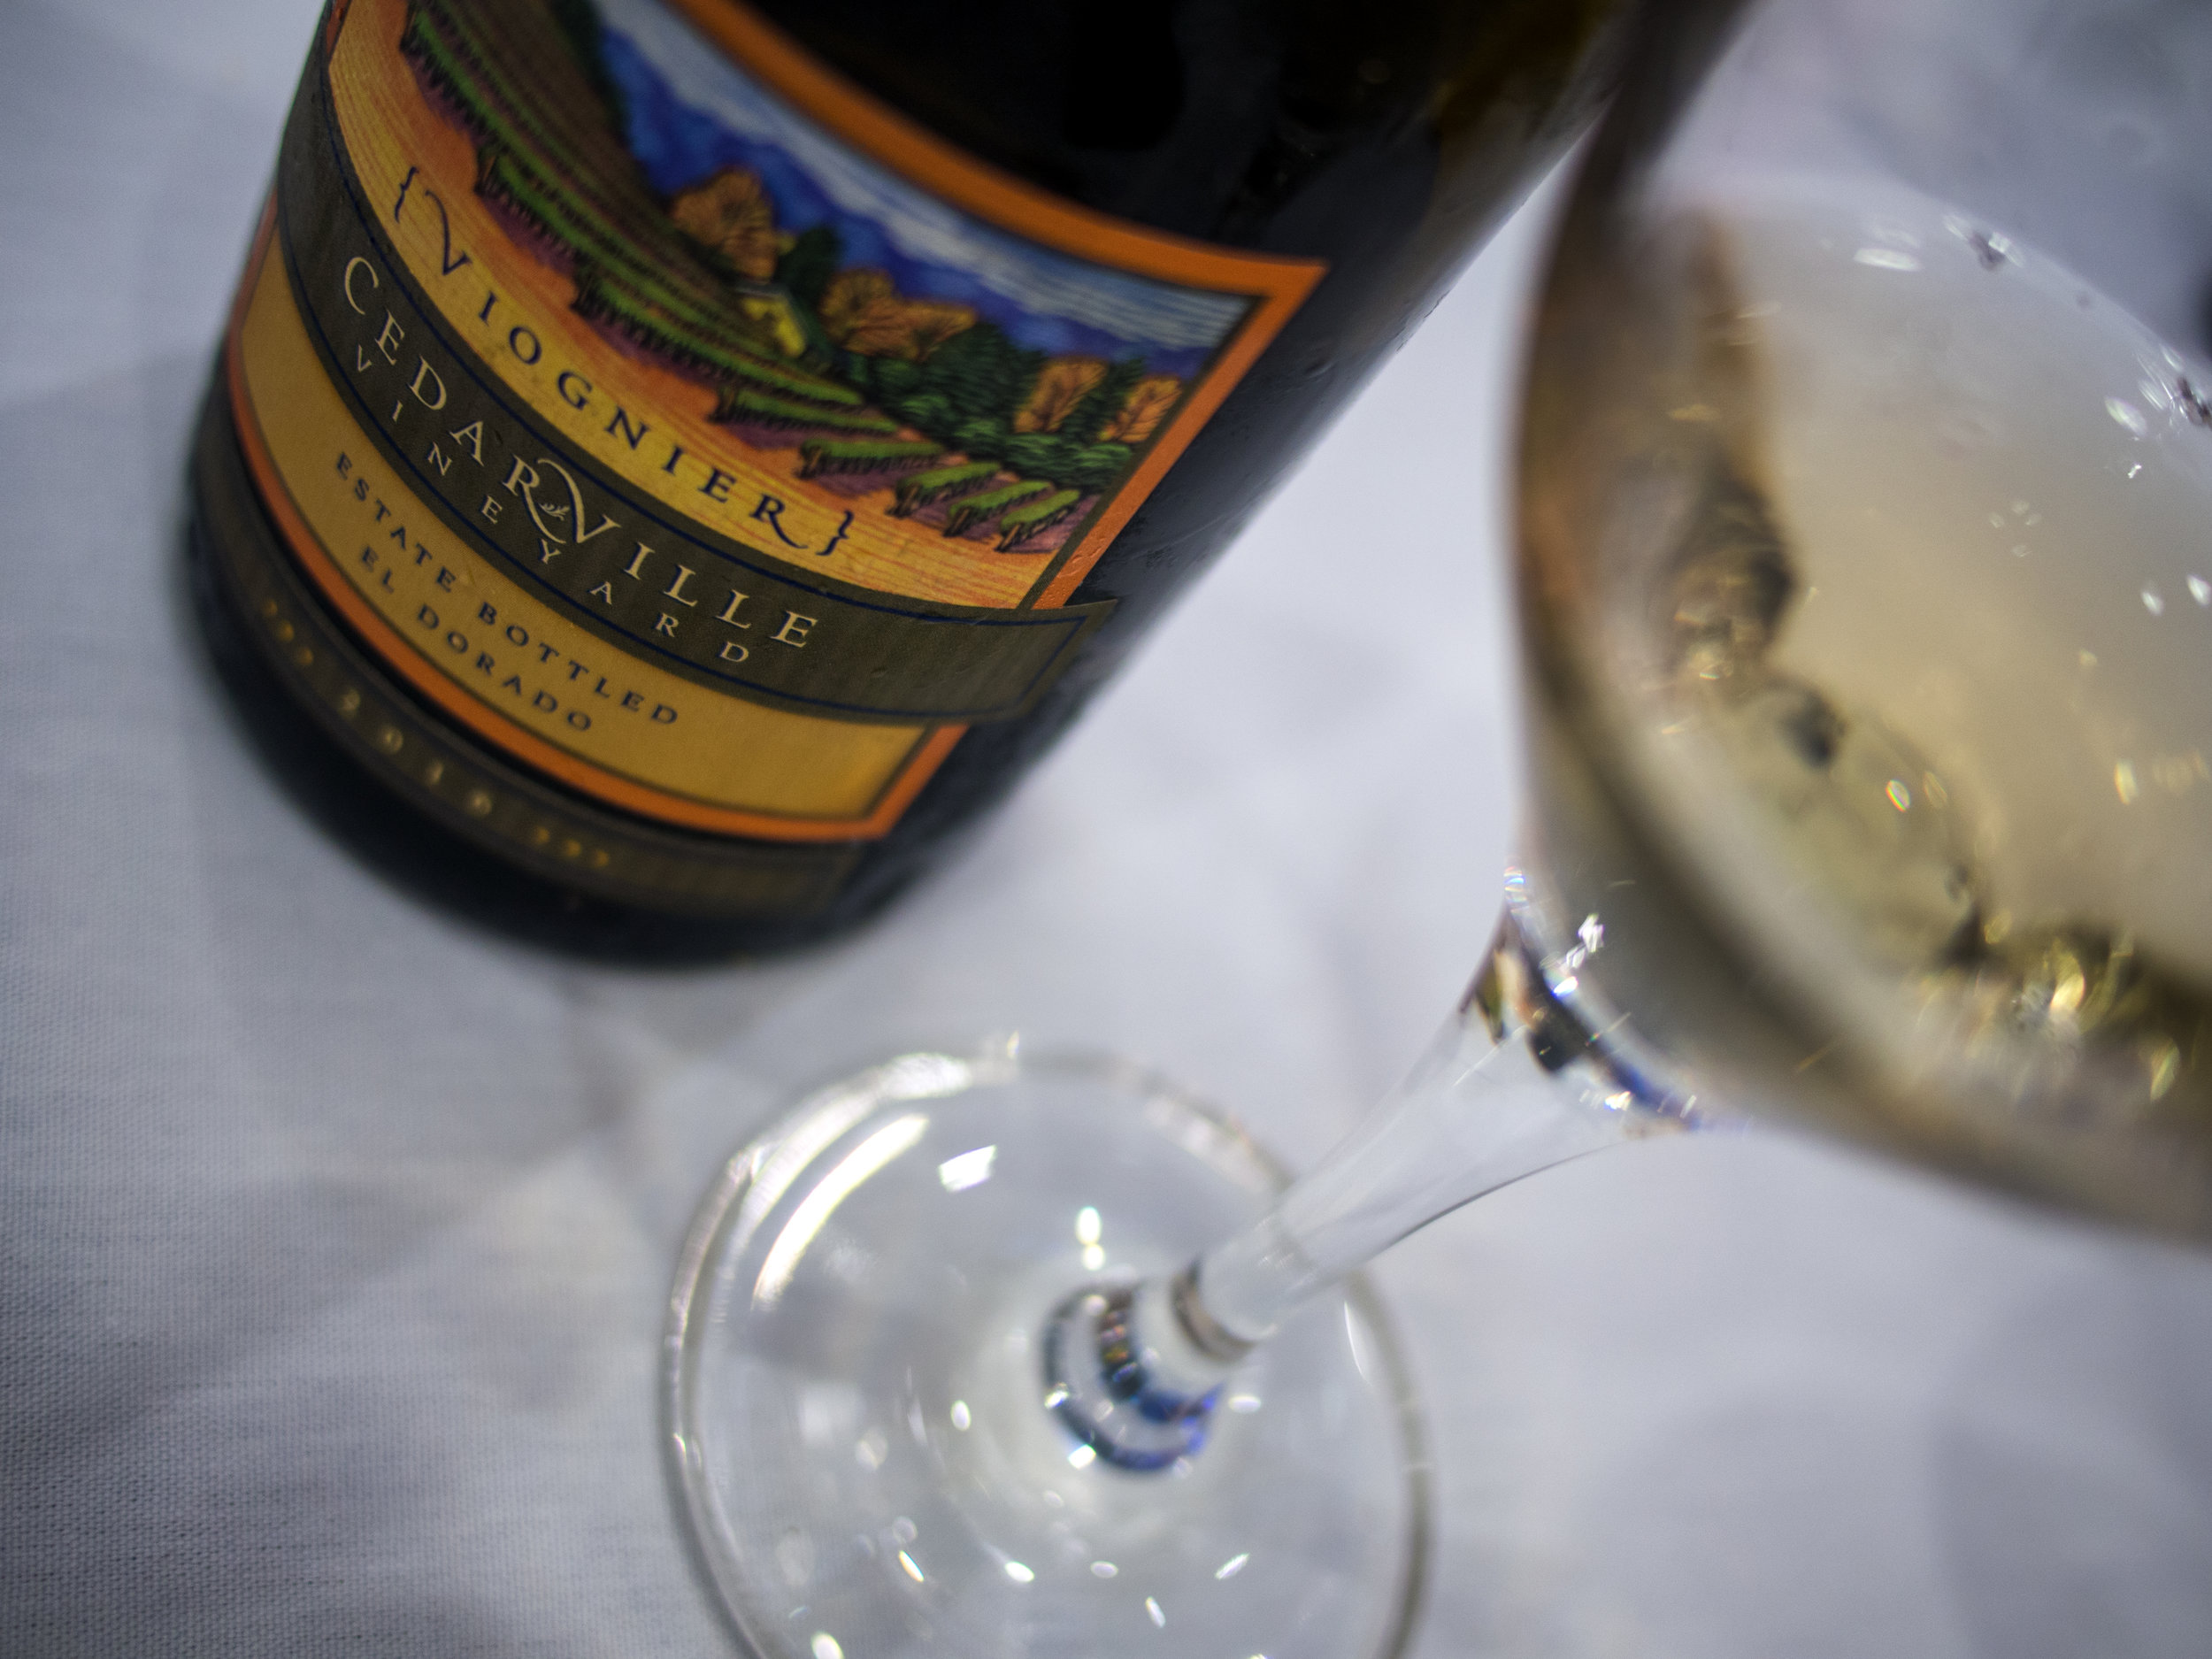 Musings by the Glass - Wines from Wine Bloggers Conference - Cedarville Vineyard Viognier El Dorado California